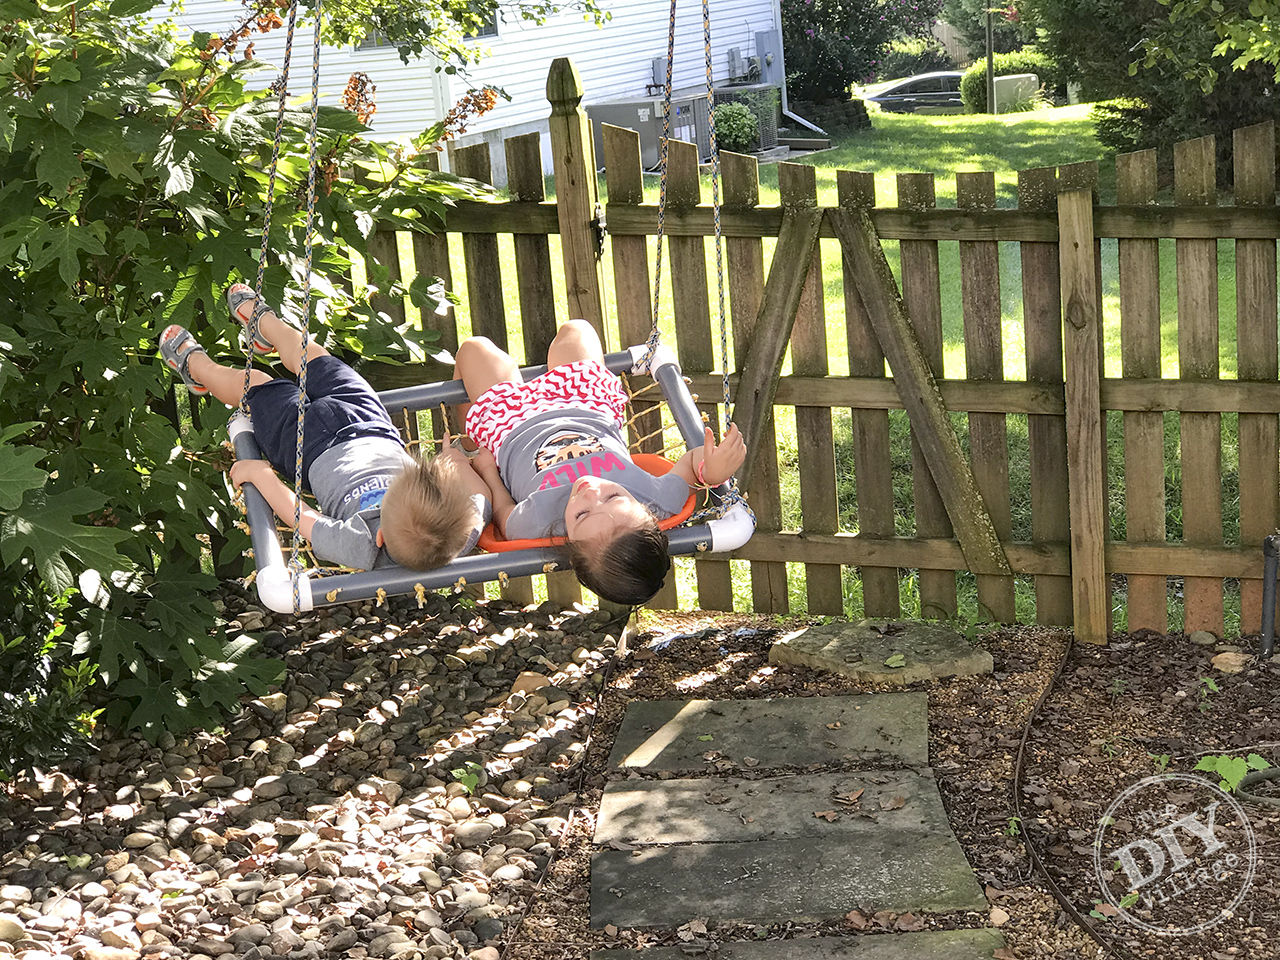 Perfect for kids - DIY platform swing tutorial. #diyswing #platformswing #sensoryswing #outdoor #ropeswing #tutorial #diy #powertoolchallenge